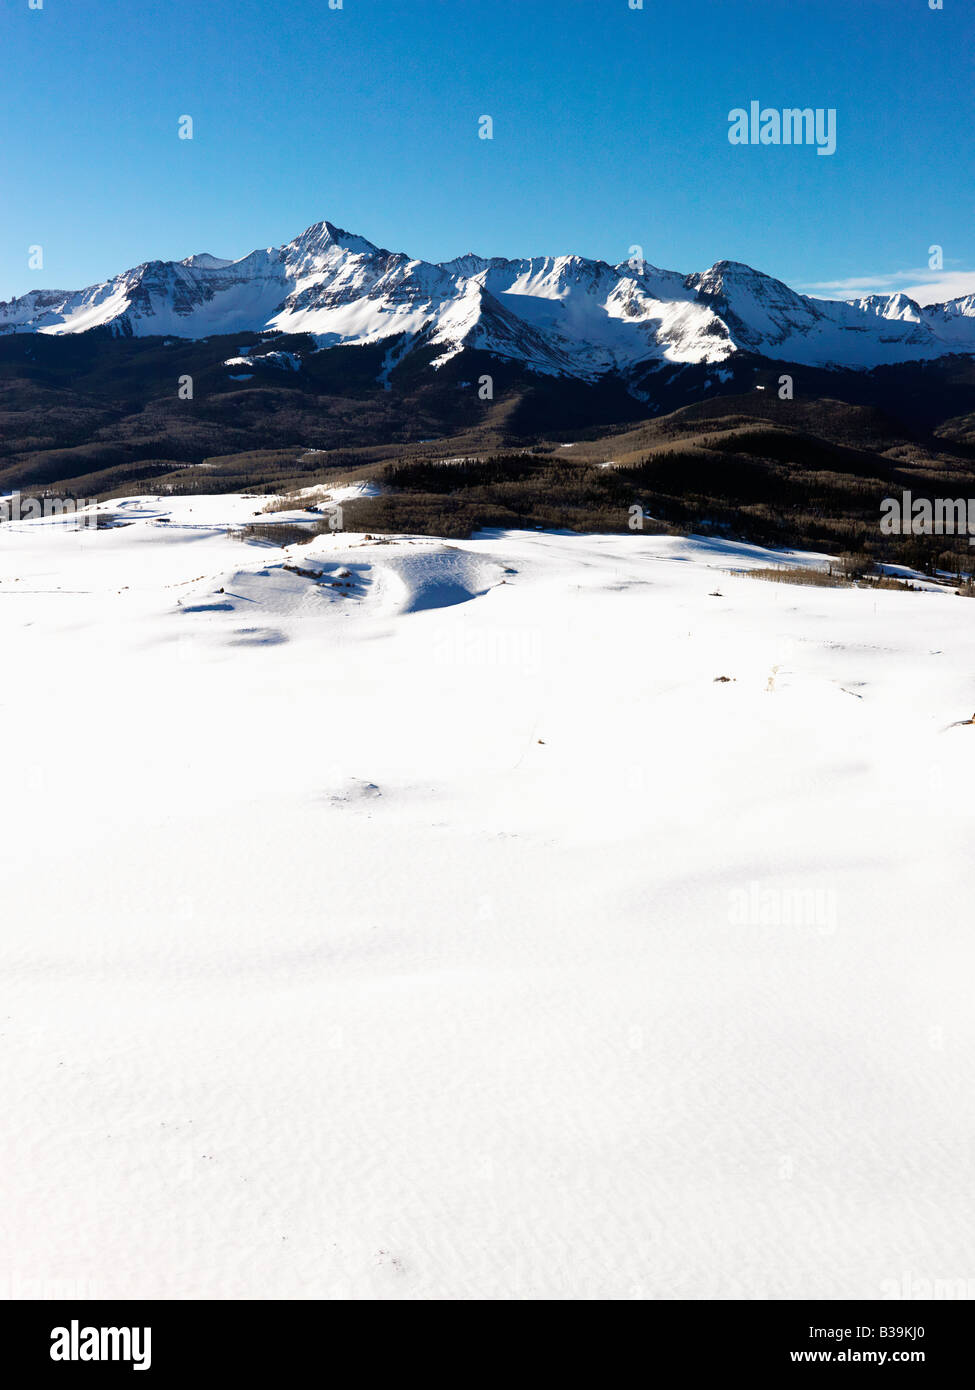 Aerial landscape of Colorado Rockies with snow covered valley in foreground - Stock Image